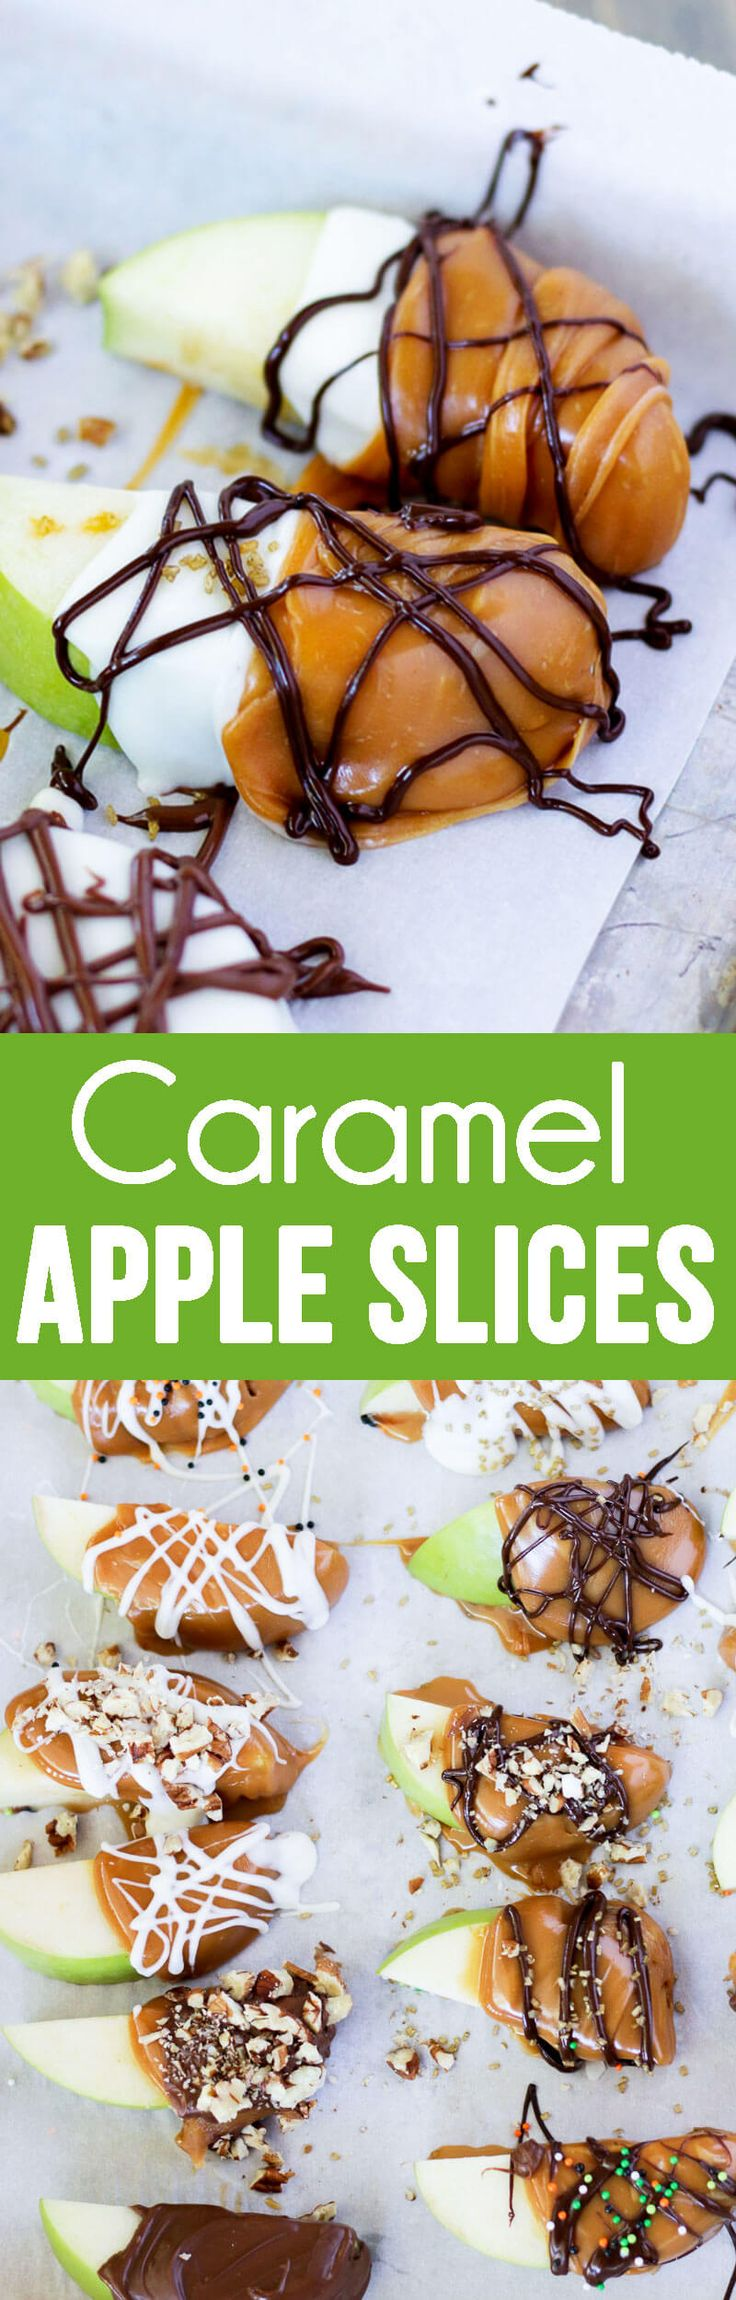 Caramel Apple Slices make eating caramel apples much less messy and much more fun!